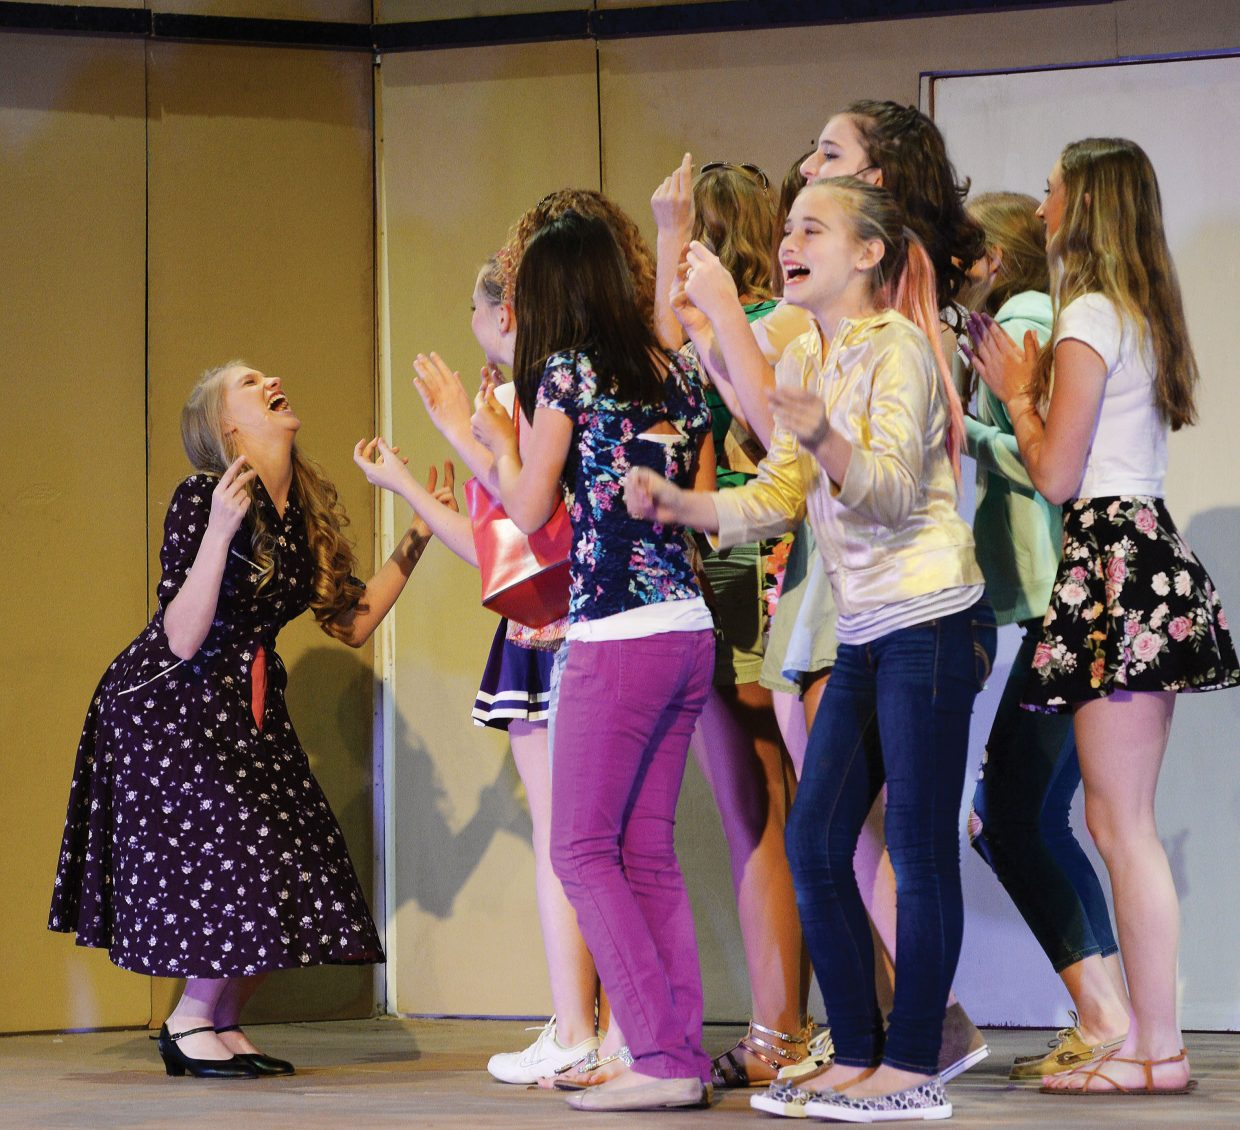 """Keala Fraioli and members of the cast react in a scene from the musical """"Legally Blonde."""" Steamboat Springs High School will present the musical at 7 p.m. Friday and Saturday at the high school auditorium. Tickets can be purchased at All That and at the high school. Students can purchase tickets for $5 with an activity pass. Admission is $12 for adults and $20 for reserve tickets, the latter of which are sold only at the high school."""